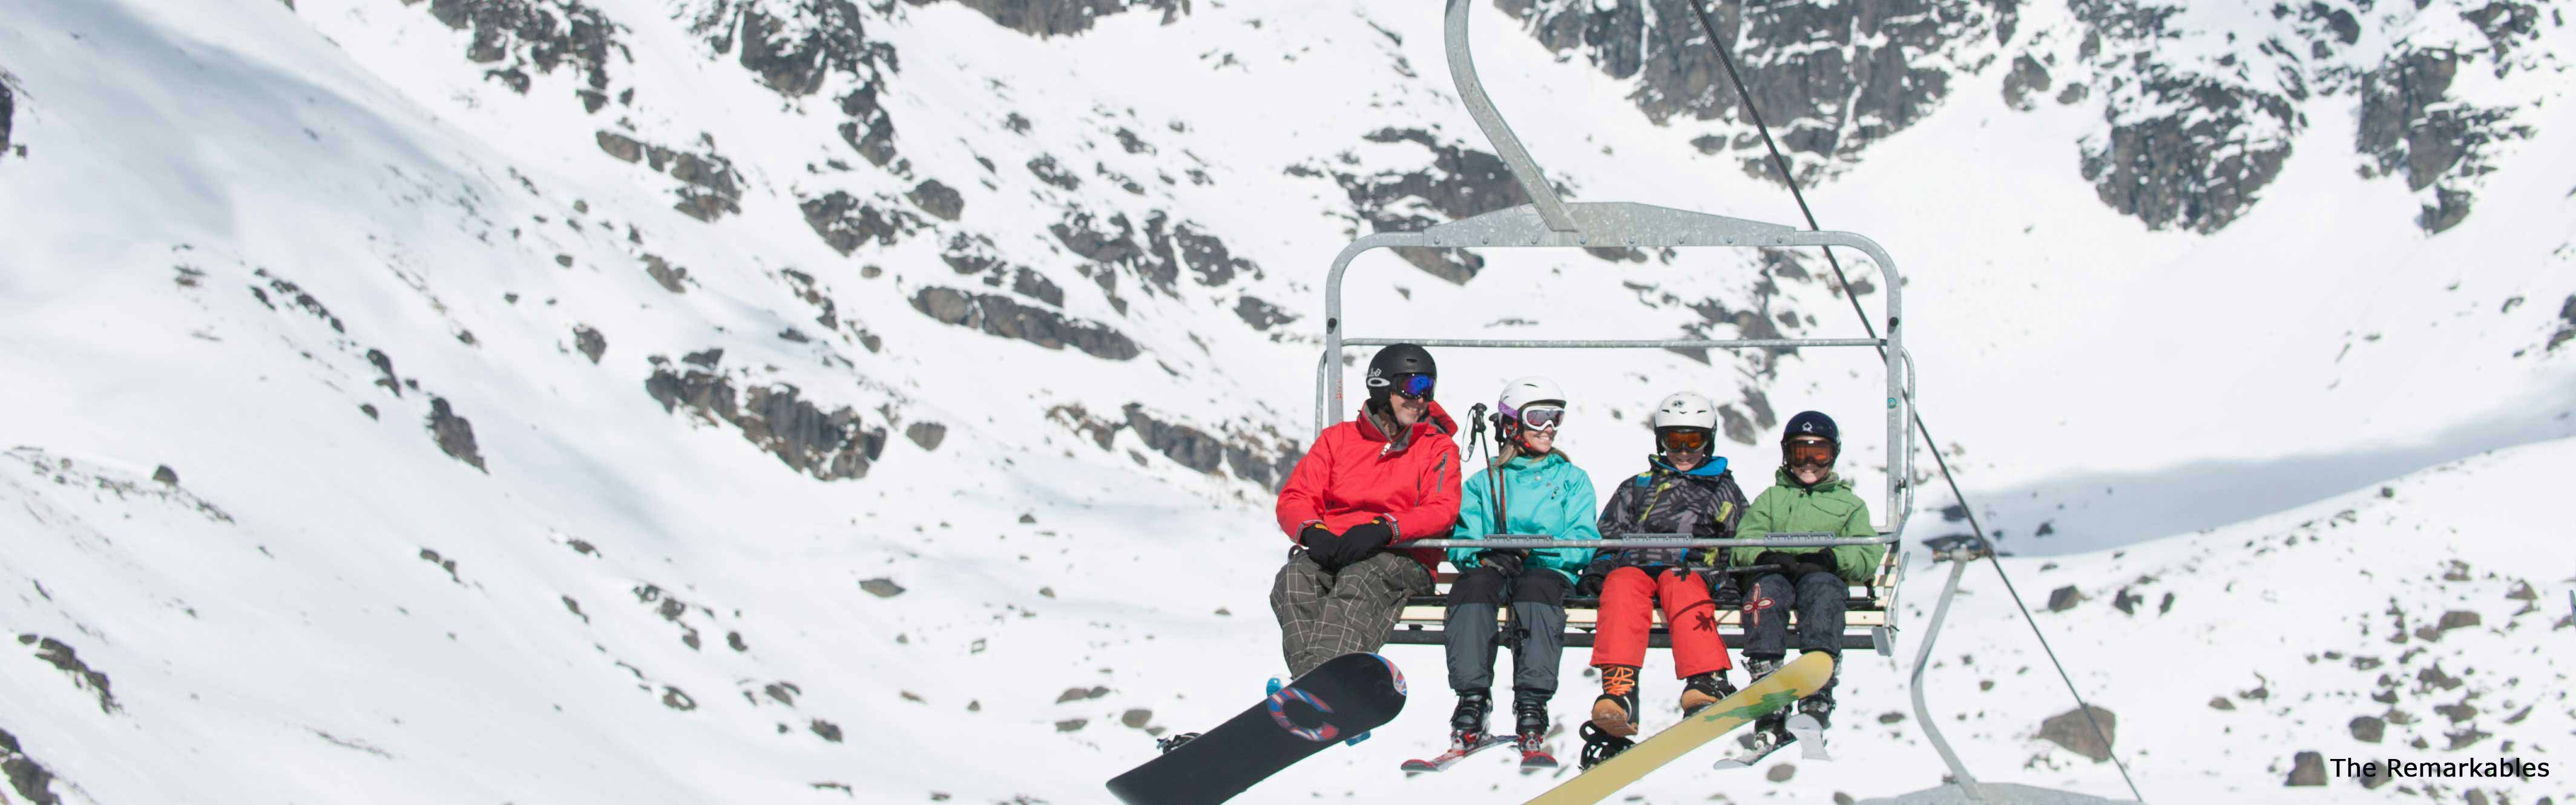 Queenstown Ski Packages  Book a 7 Day Family Ski Holiday